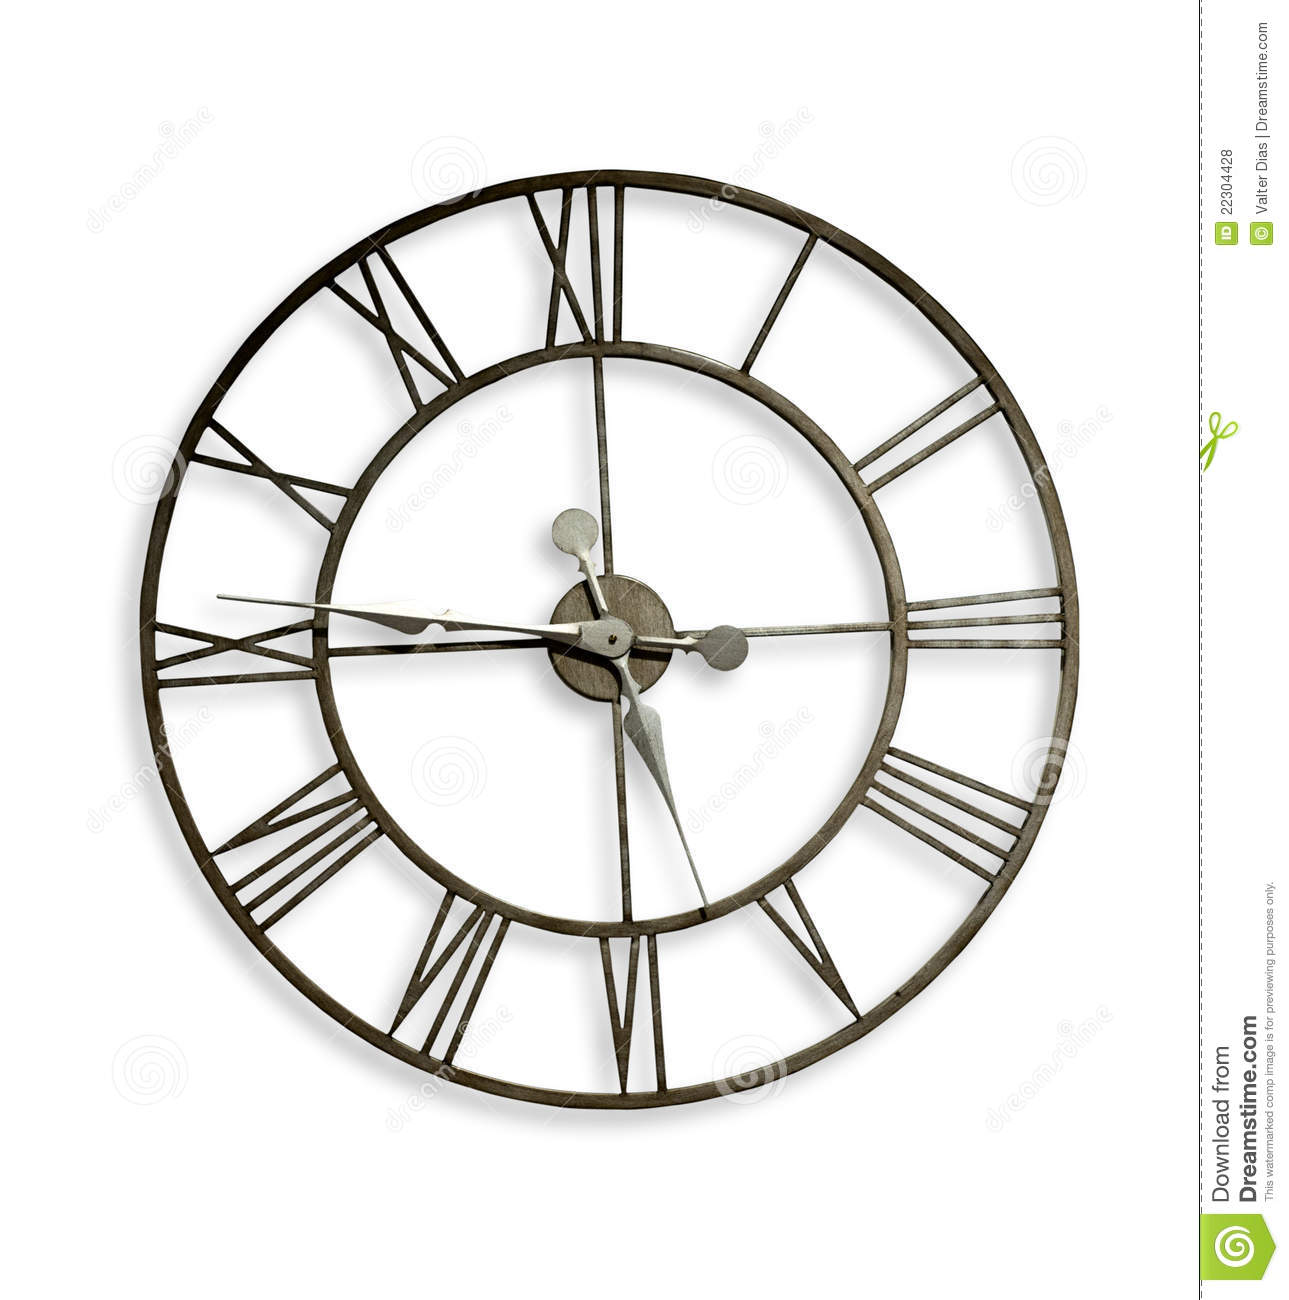 Roman numeral wall clock stock photo image of time metal 22304428 royalty free stock photo download roman numeral wall clock amipublicfo Gallery